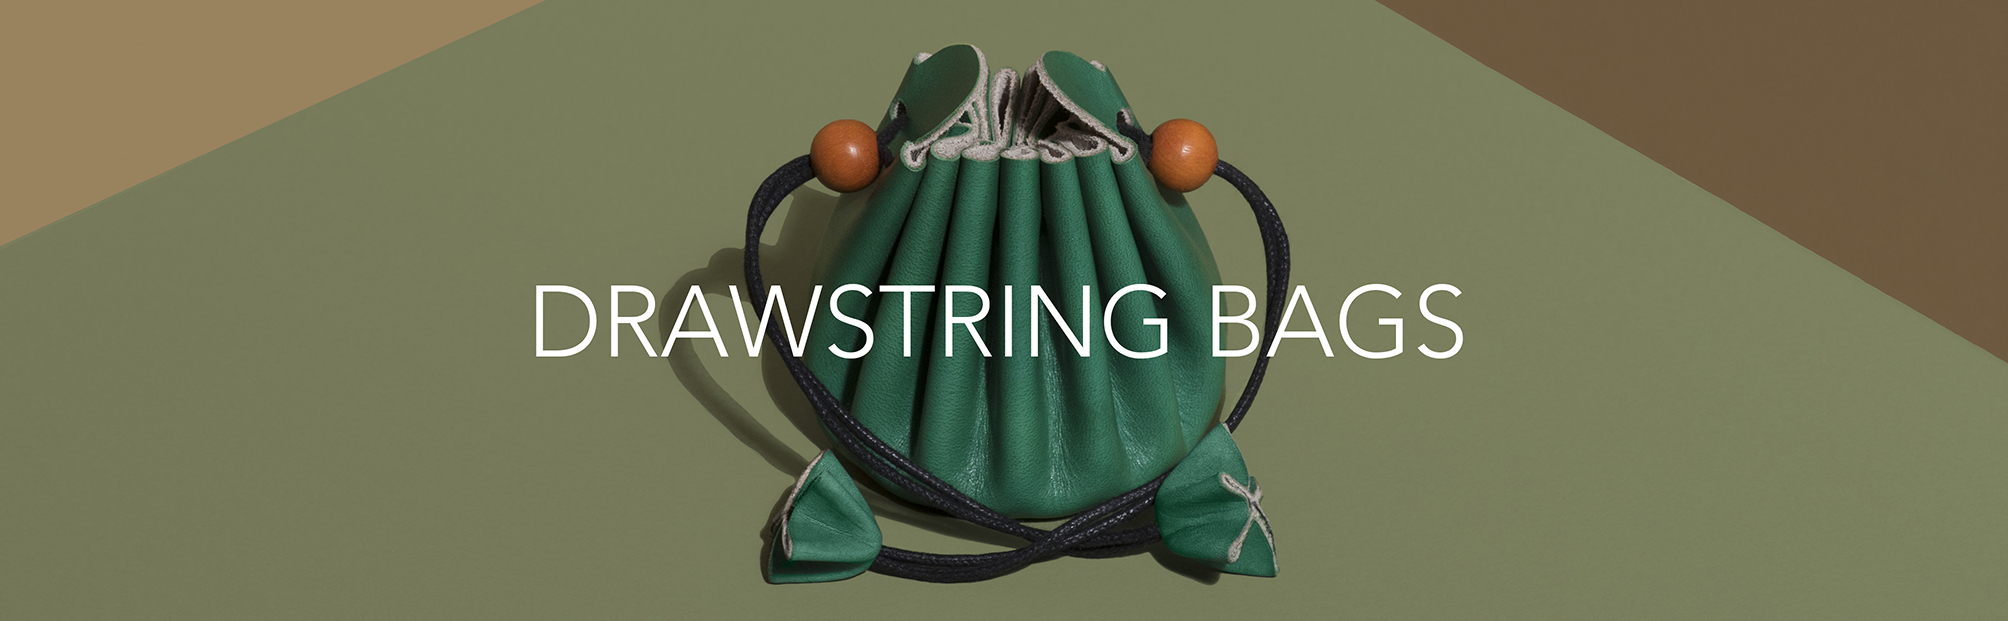 Drawstring Bags | Zaccardelli Leather Co